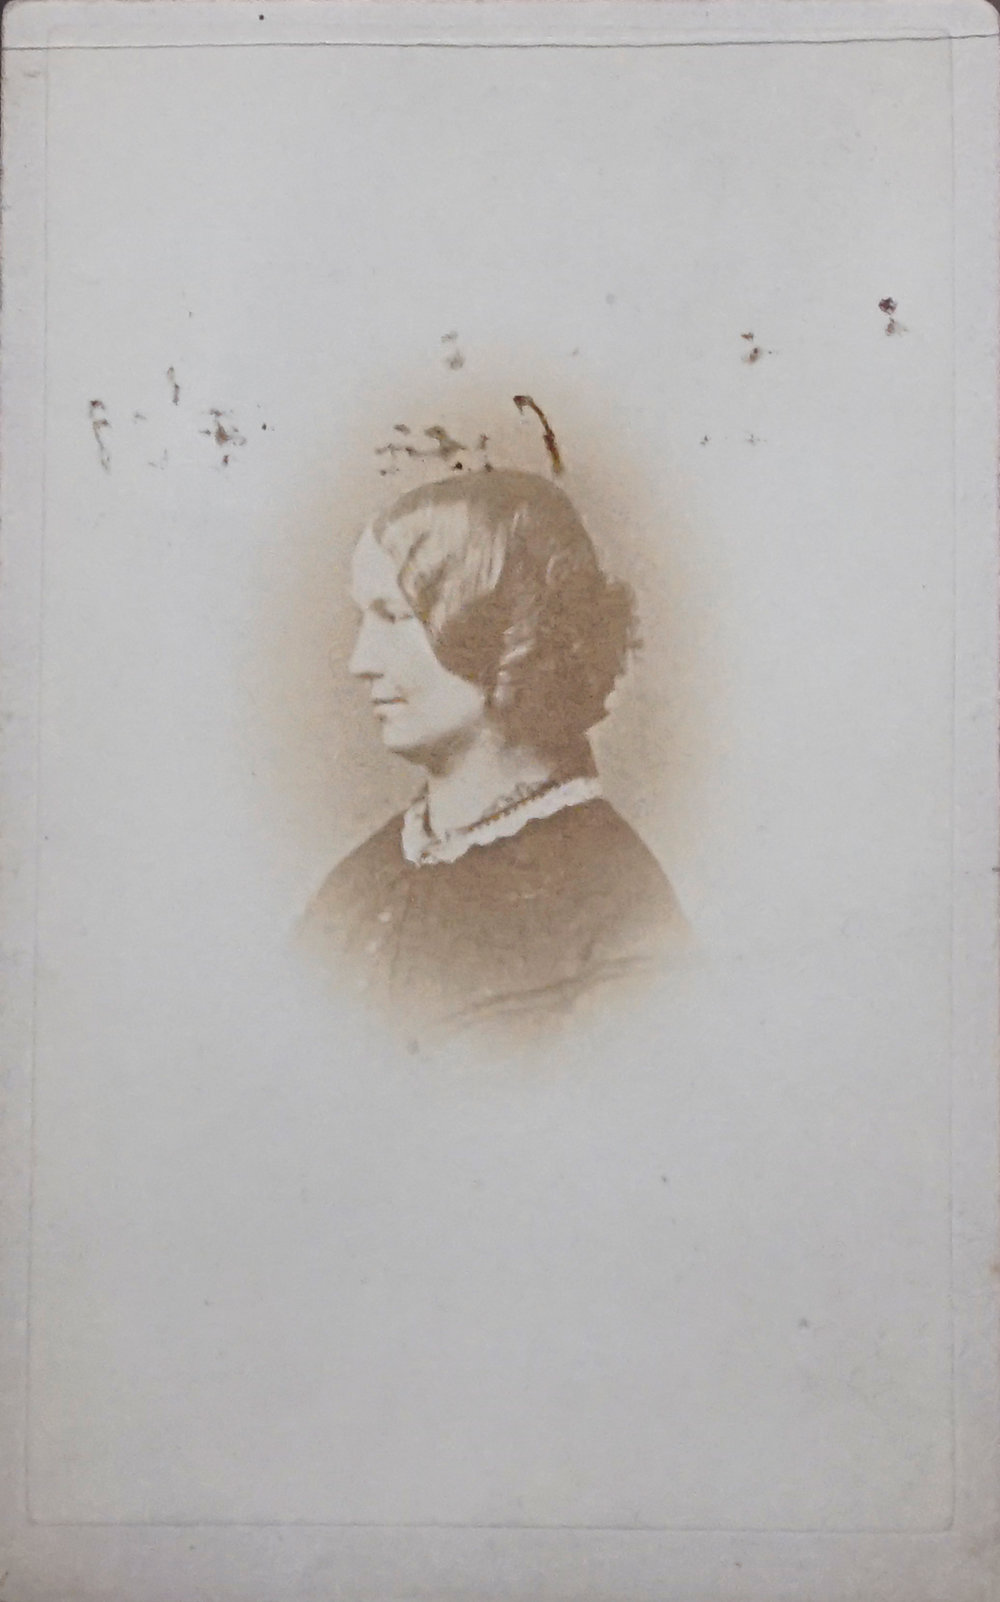 Since this photograph was discovered in the 1980's, many people have hoped to confirm that is the only surviving photographic likeness of Charlotte Brontë. It is, after all, marked on the verso  Within a year of CB's death,  apparently in the hand of Brontë's close friend Ellen Nussey, to whom many letters are addressed. But the woman depicted bears a strong resemblance to Nussey herself, who may simply have been noting that she had her own photograph taken within a year of her friend's death.